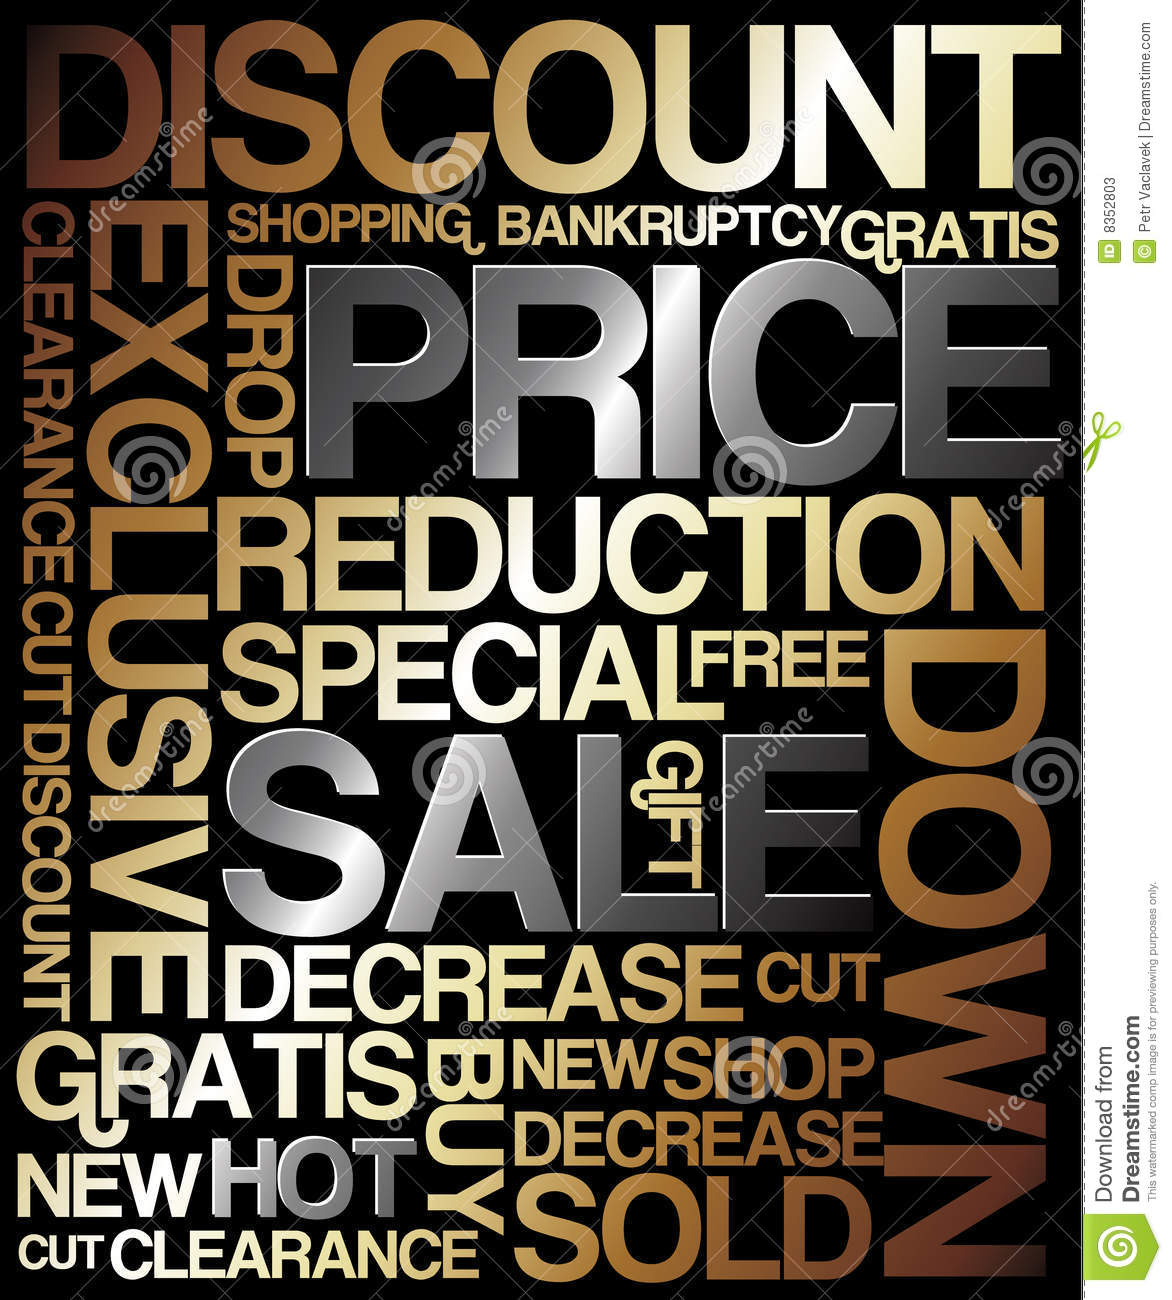 Sale discount poster - metal colors (golden and silver).: dreamstime.com/stock-photos-sale-discount-poster-image8352803